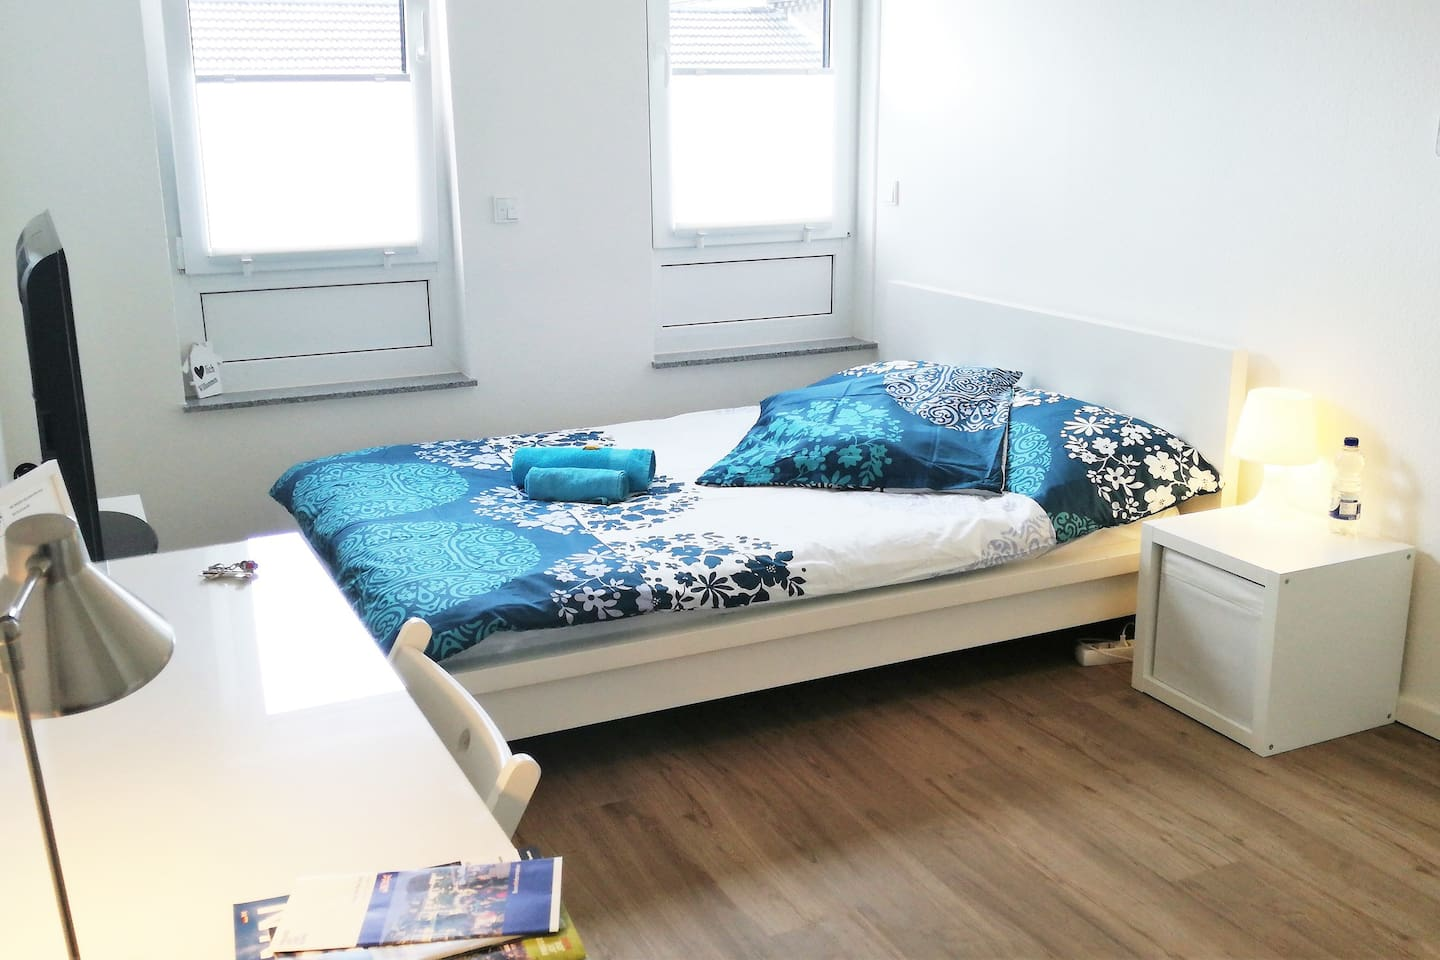 The room, with 1.40x 2.00 mt bed